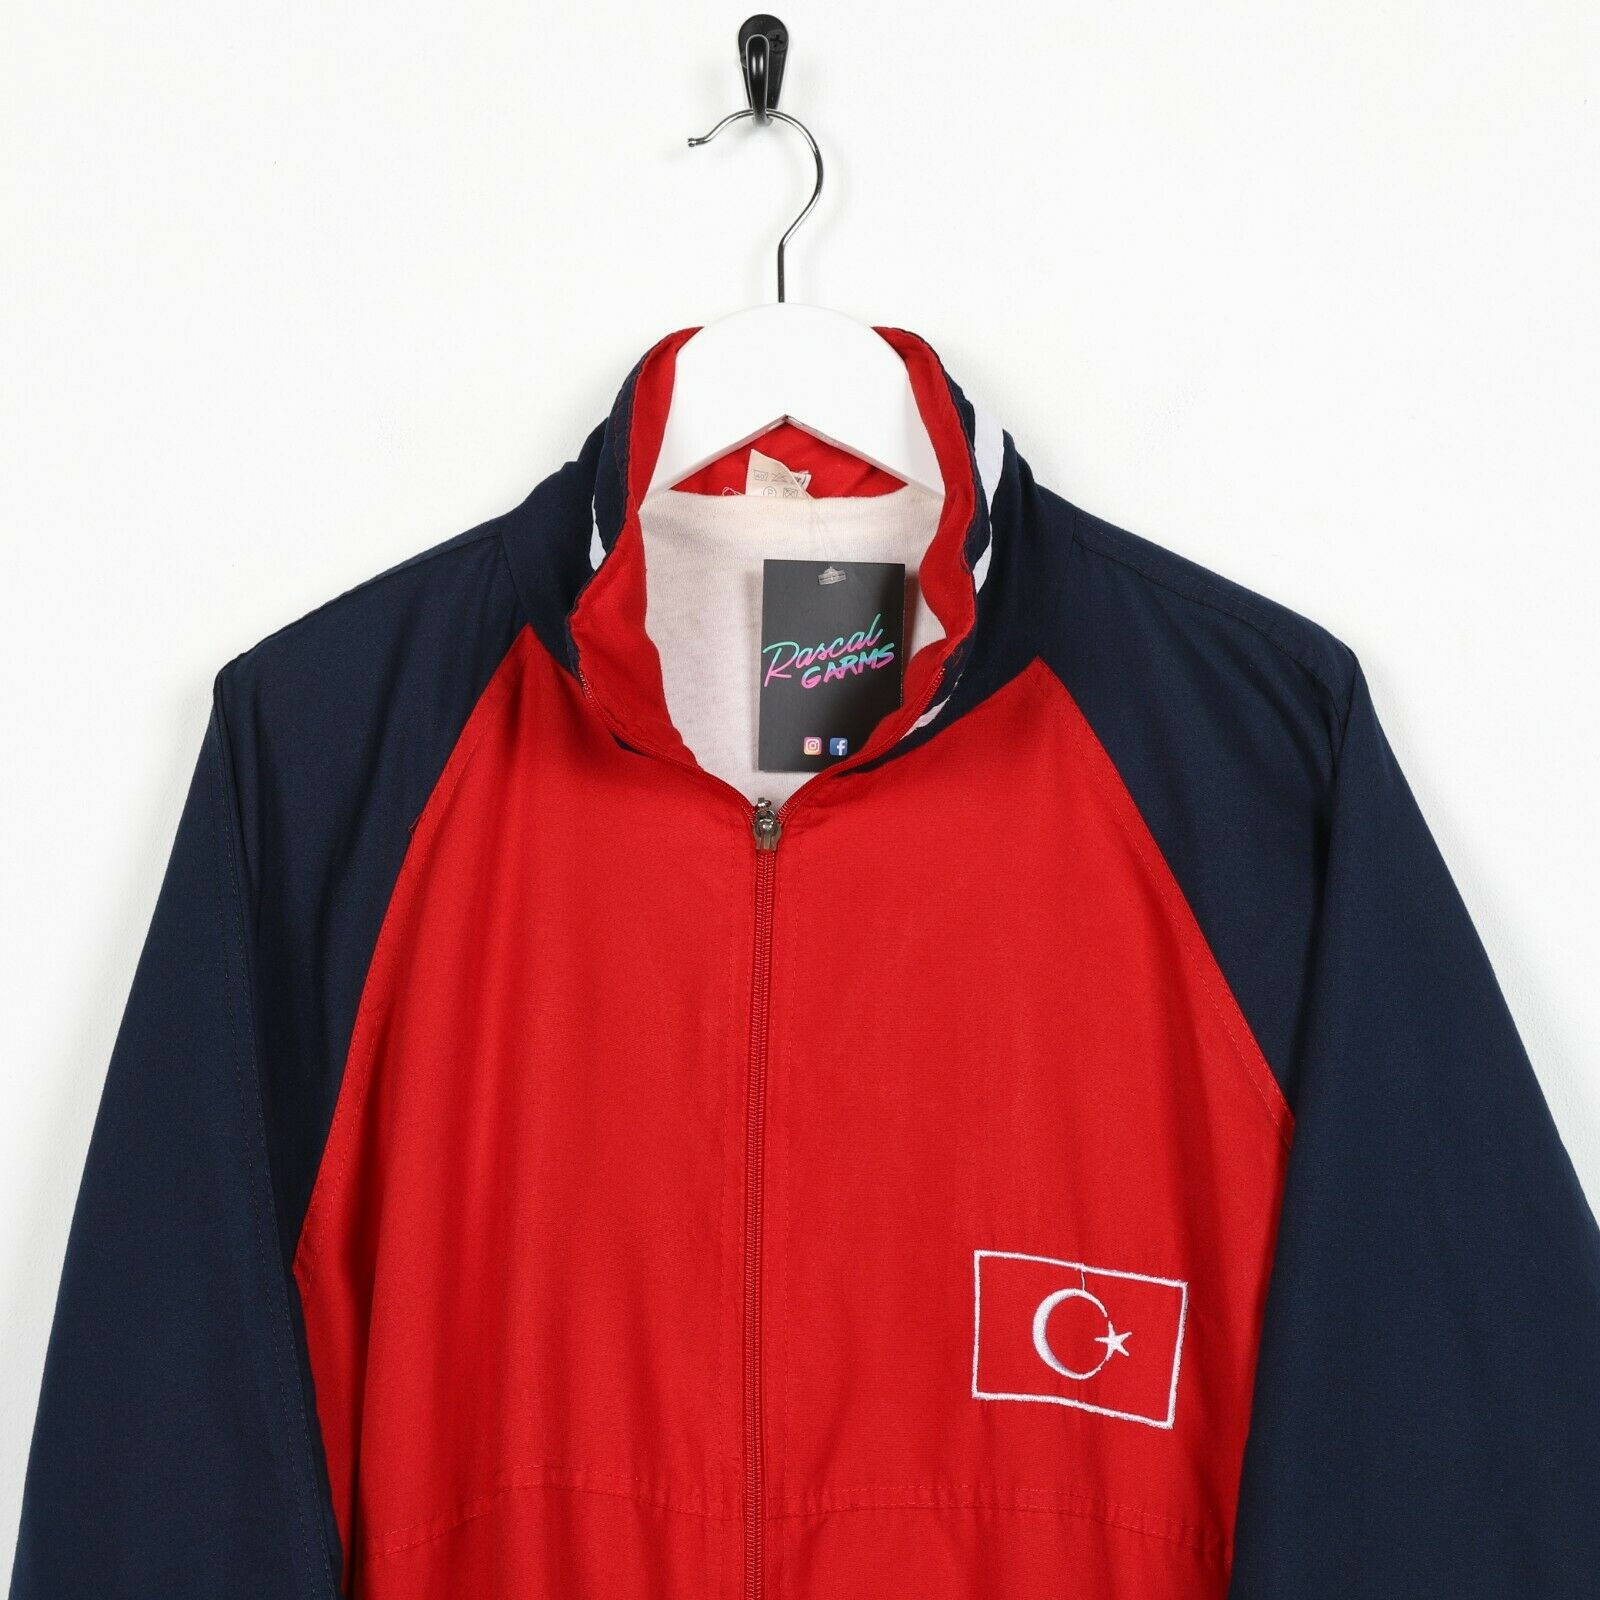 Vintage 90s Soft Shell Windbreaker Jacket Red XL